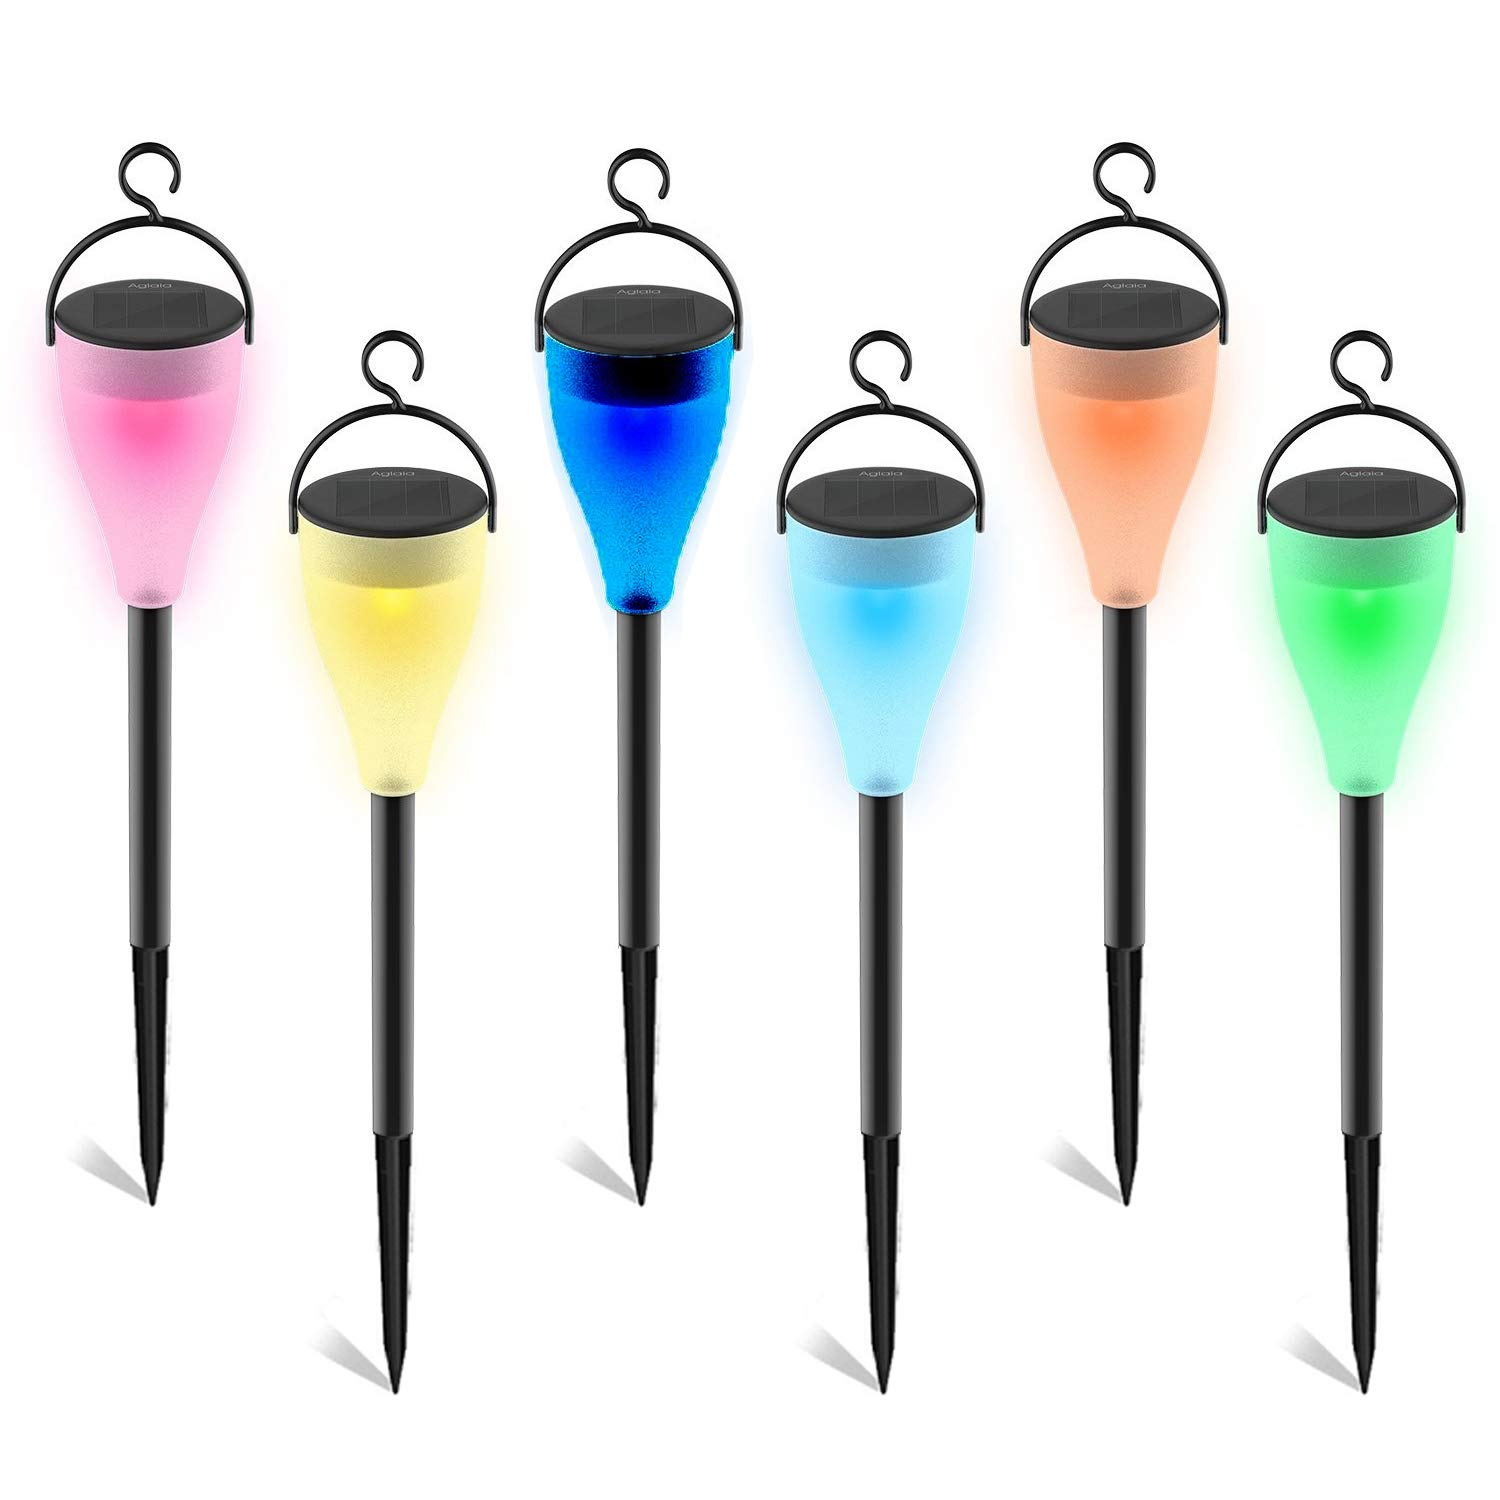 Solar LED Lights Outdoor Decorative 7 Color Changing Pathway Lights 6 Pack Waterproof Landscape Lighting for Garden Wedding and Holiday Decorations (Black)